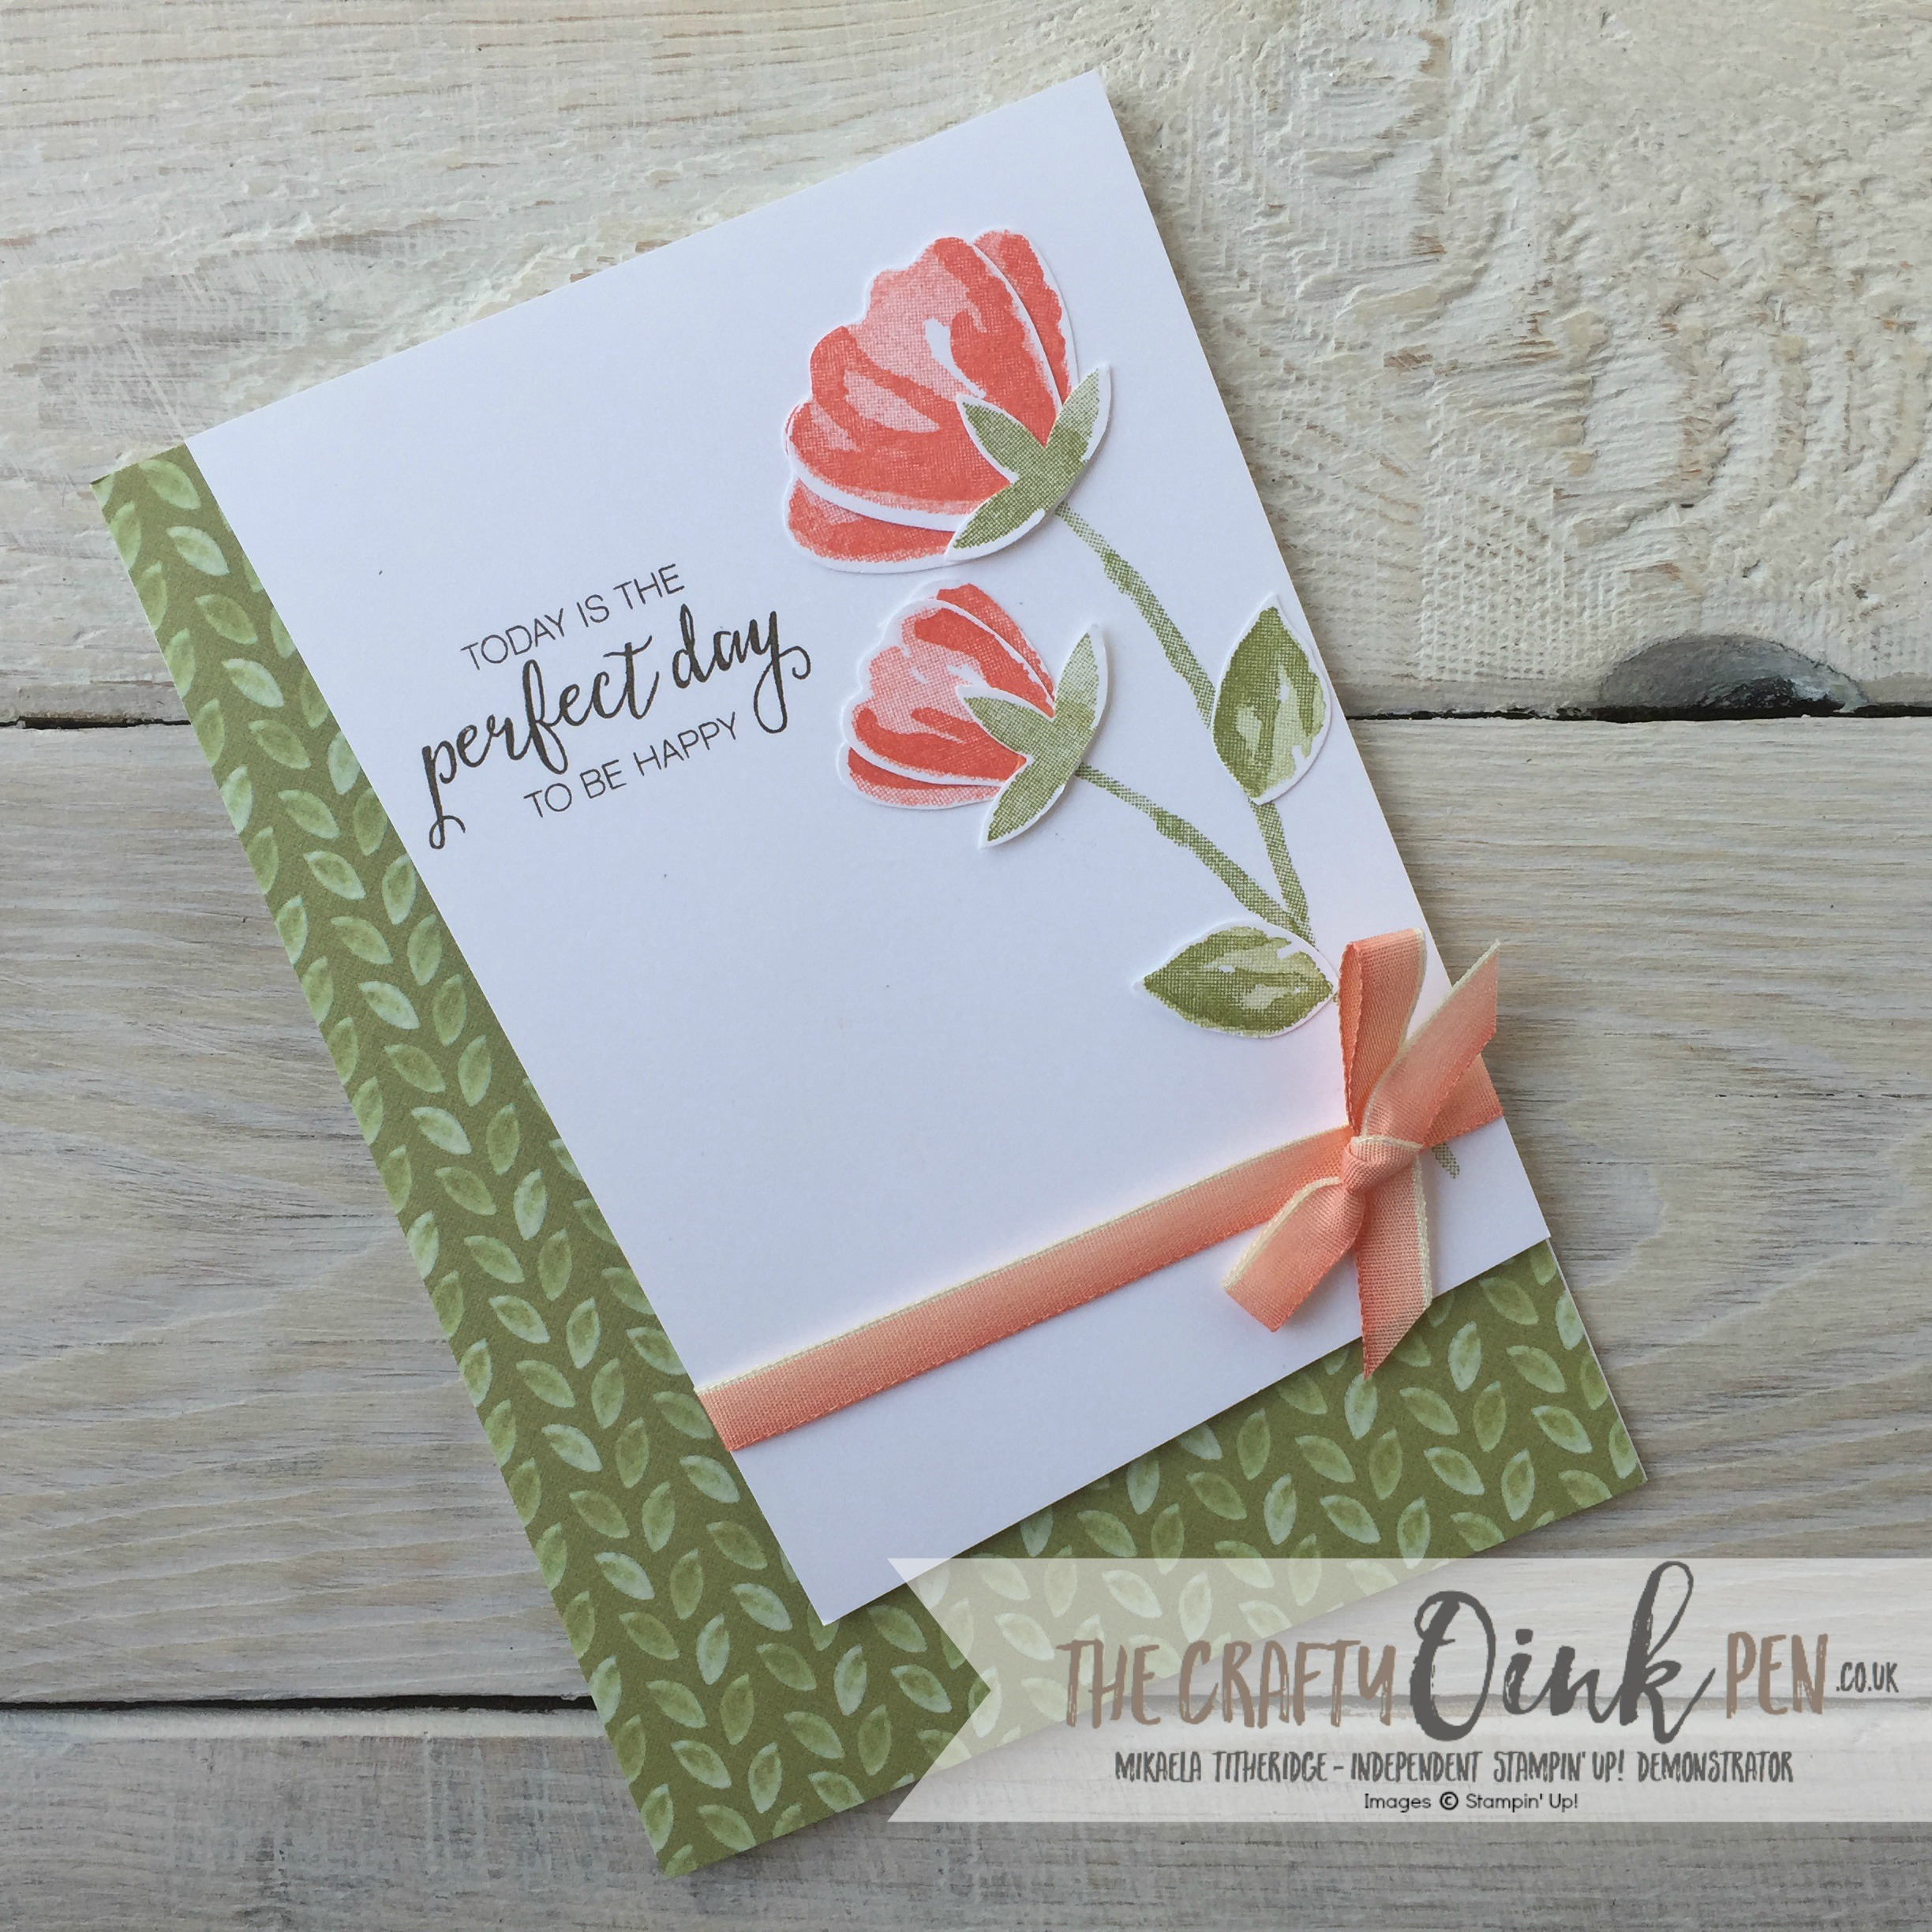 Bunch of blossoms and Blossom Builder Punch by Mikaela Titheridge, Independent Stampin' Up! Demonstrator, The Crafty oINK Pen